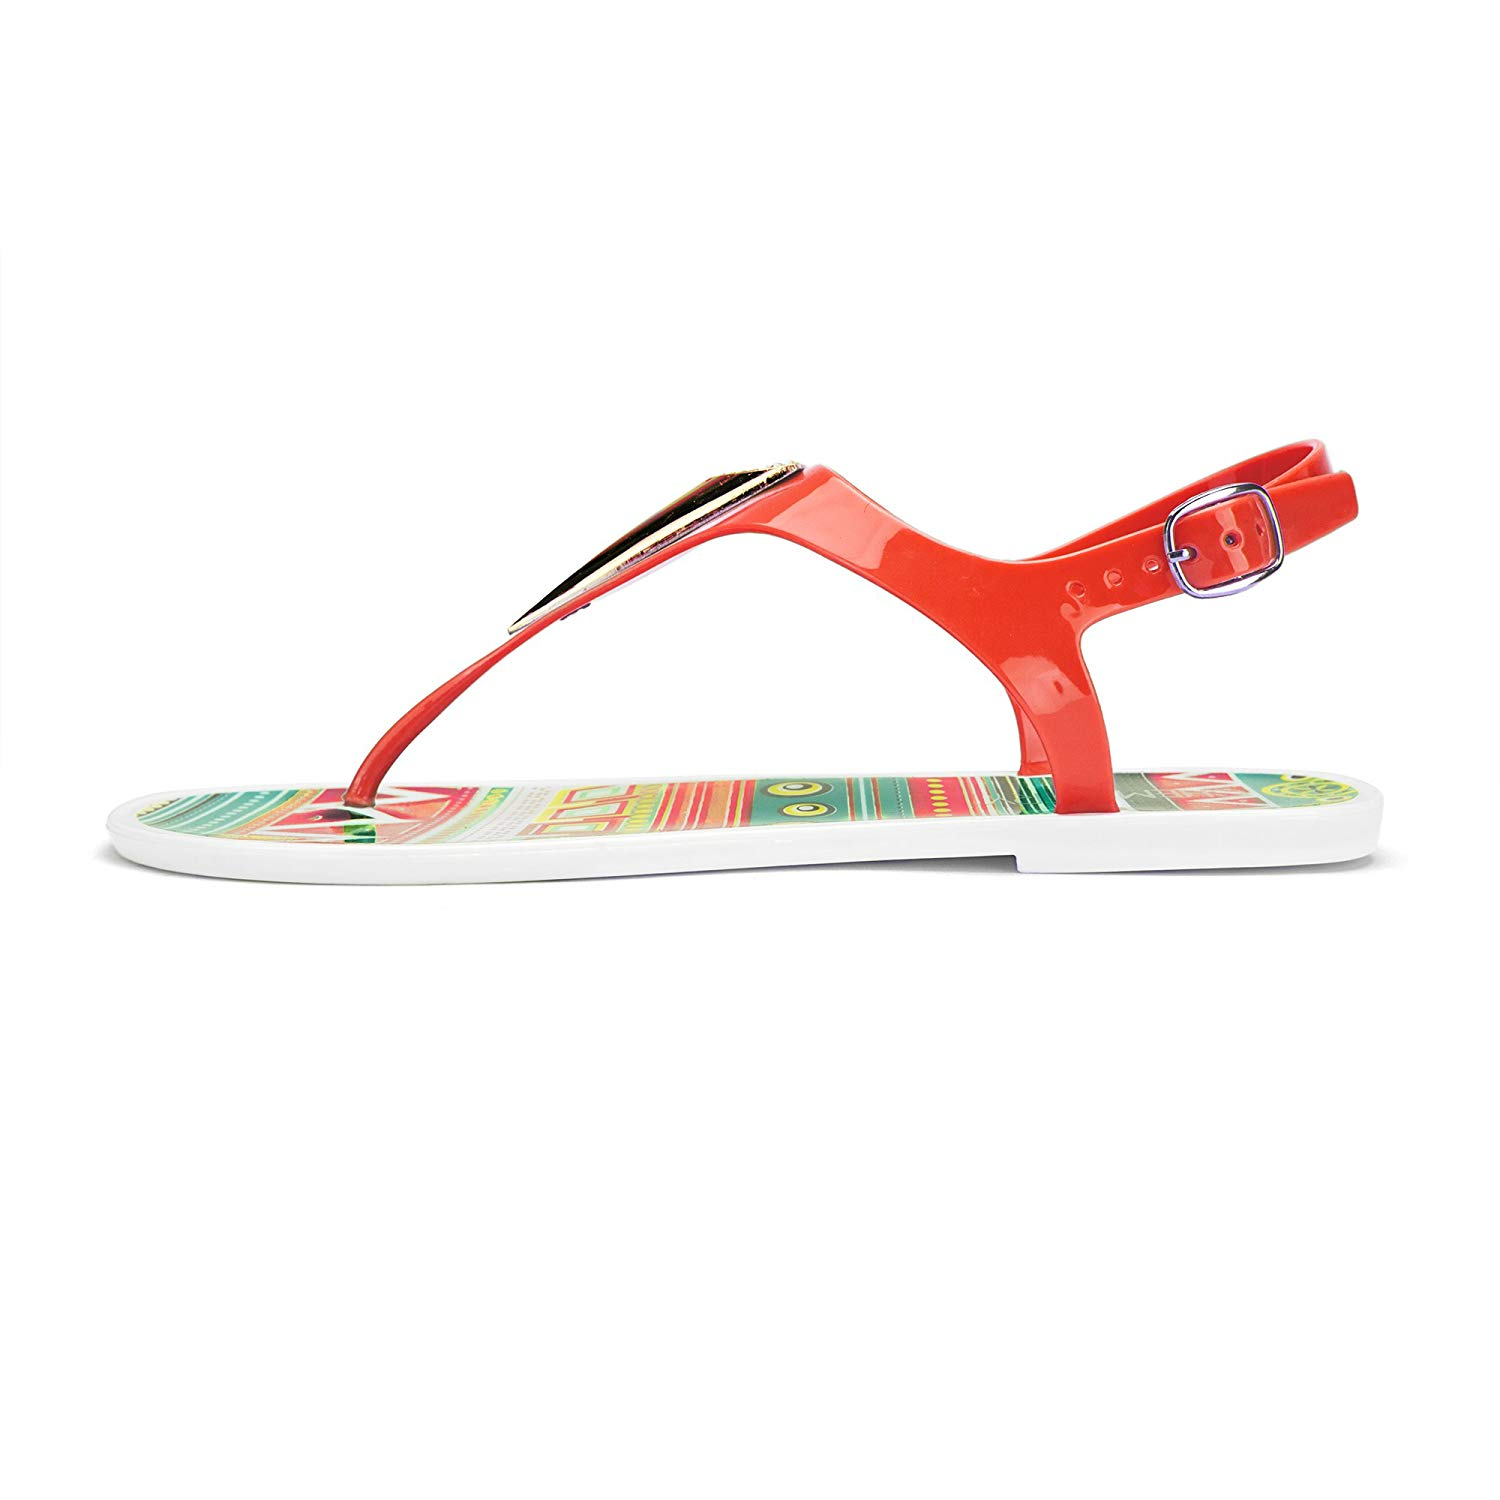 6d12a9f42f8fa Get Quotations · Chemistry® EVA Women s Roman Gladiator Thong Bow Tie Flat  Sandals Adjustable Ankle Strap Flip Flops